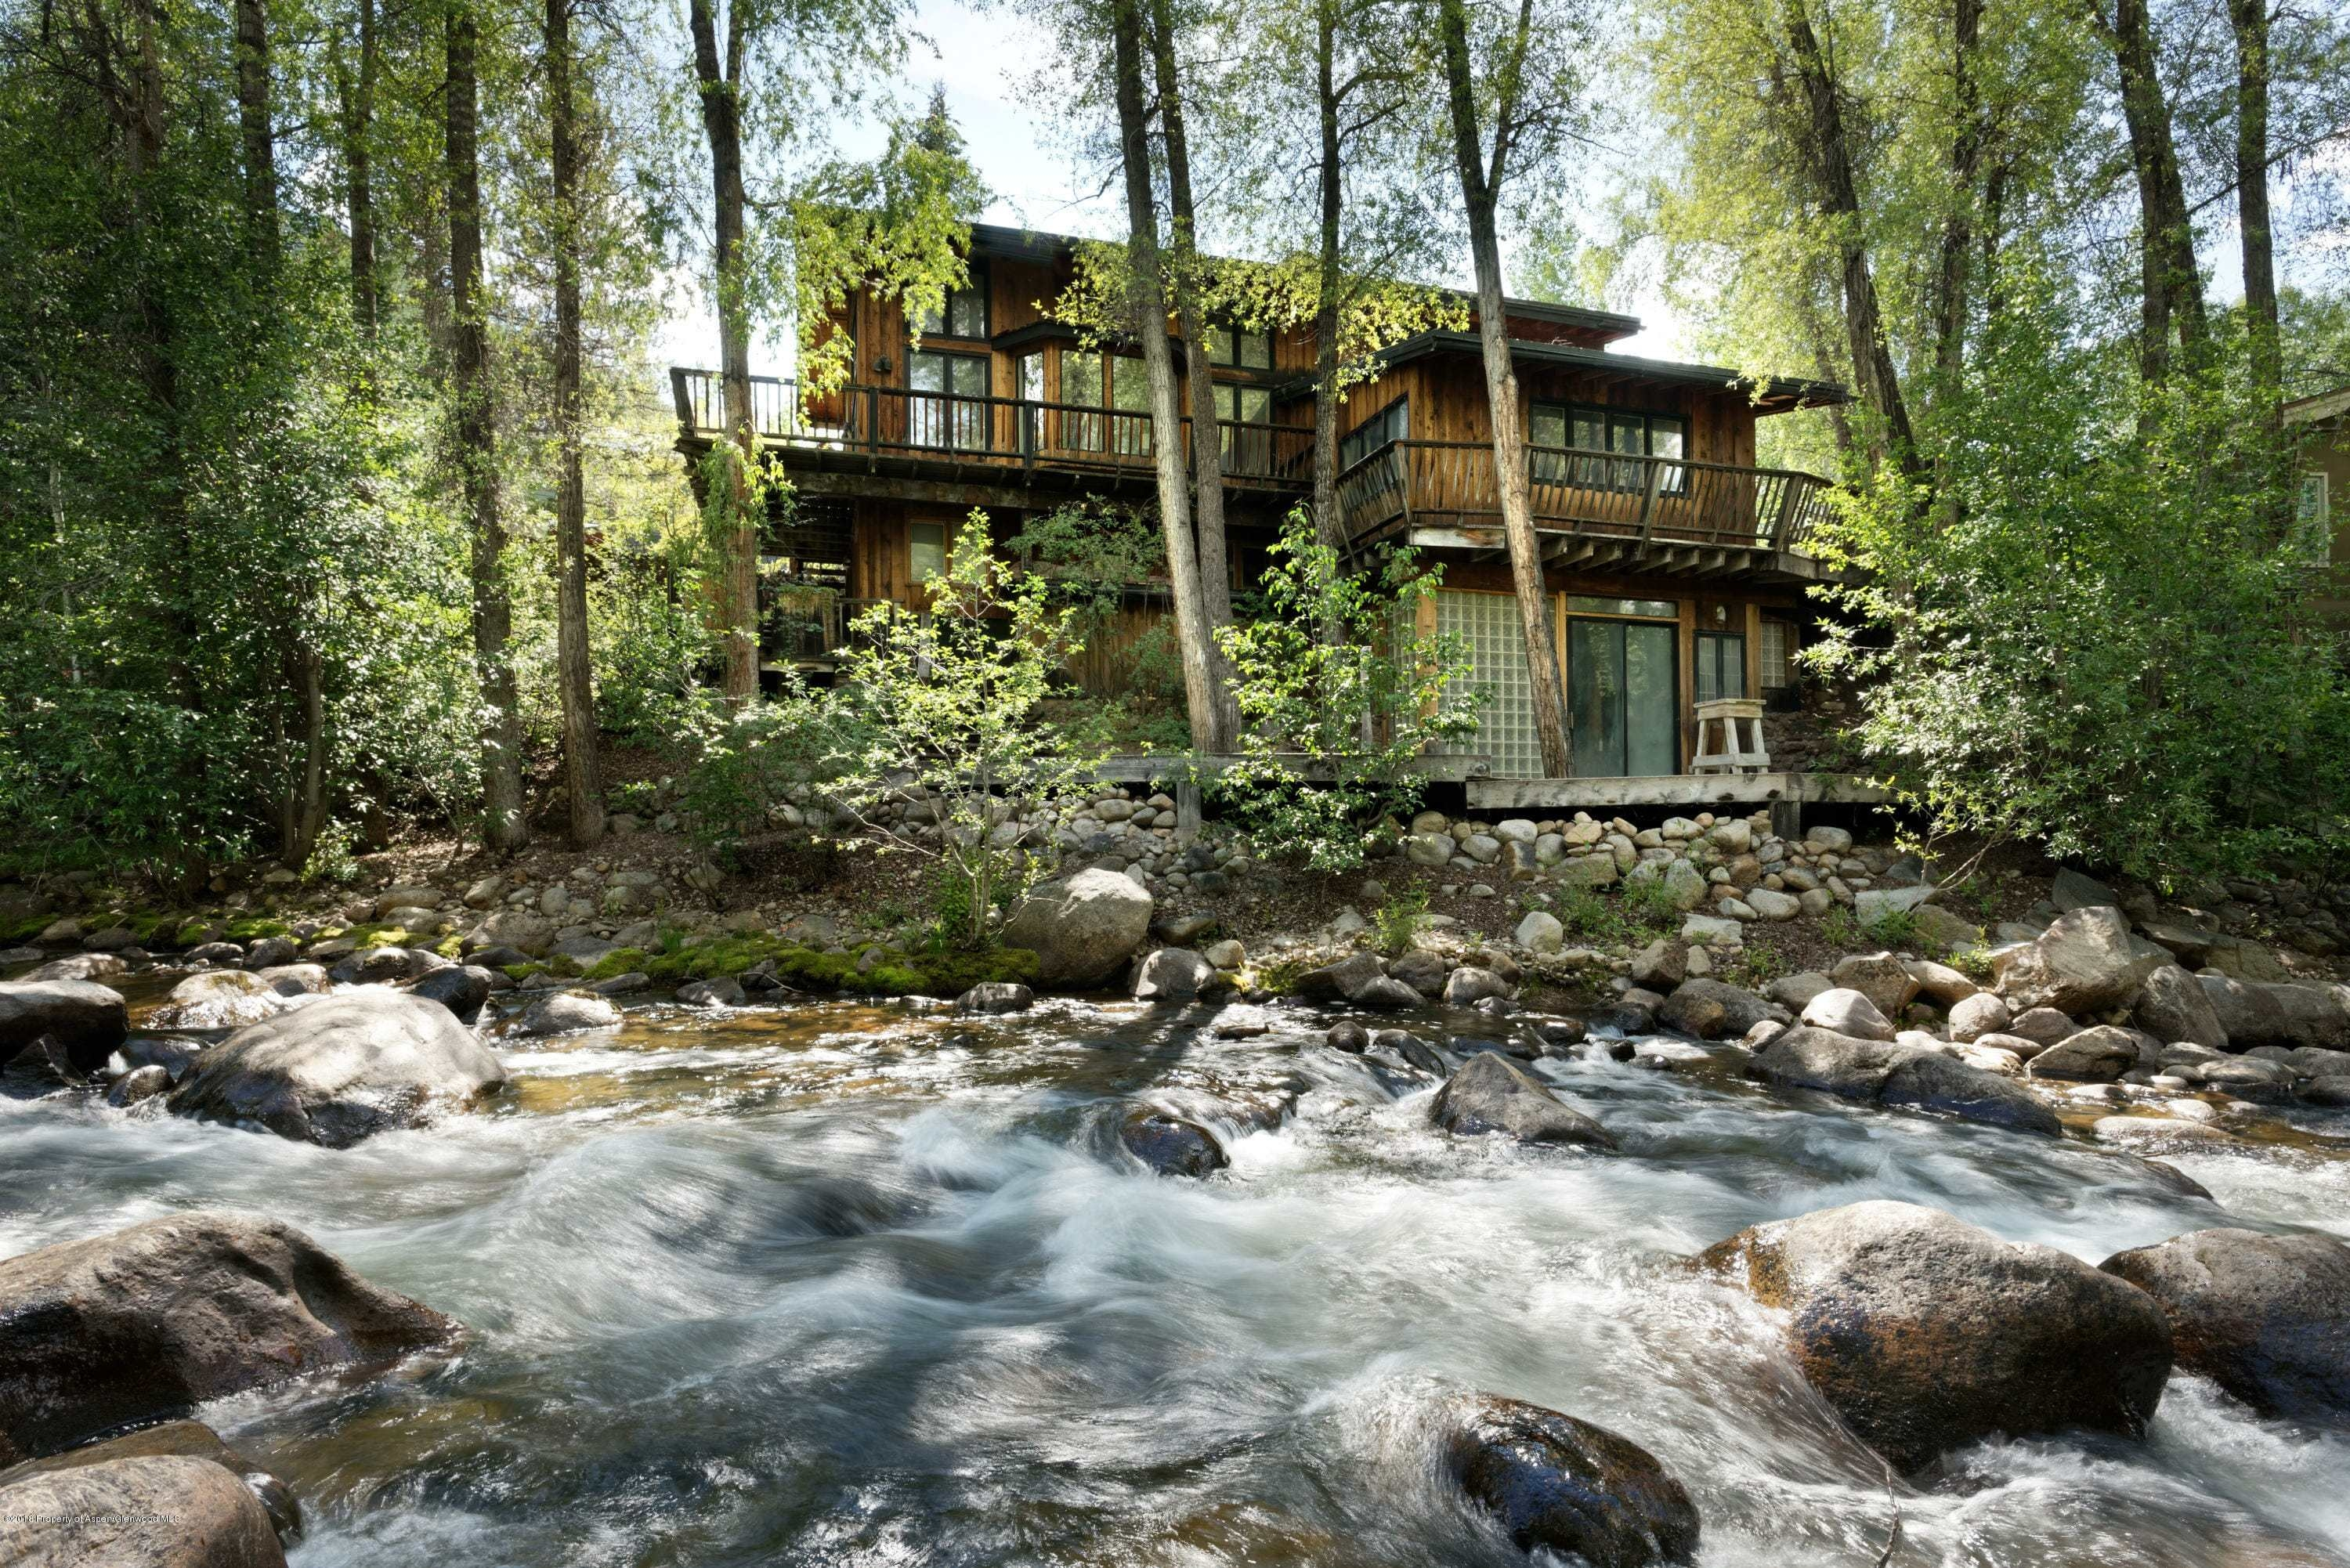 1108 Waters Ave River Lot with Challenging Rebuild Prospects Closes at $5.4M Image